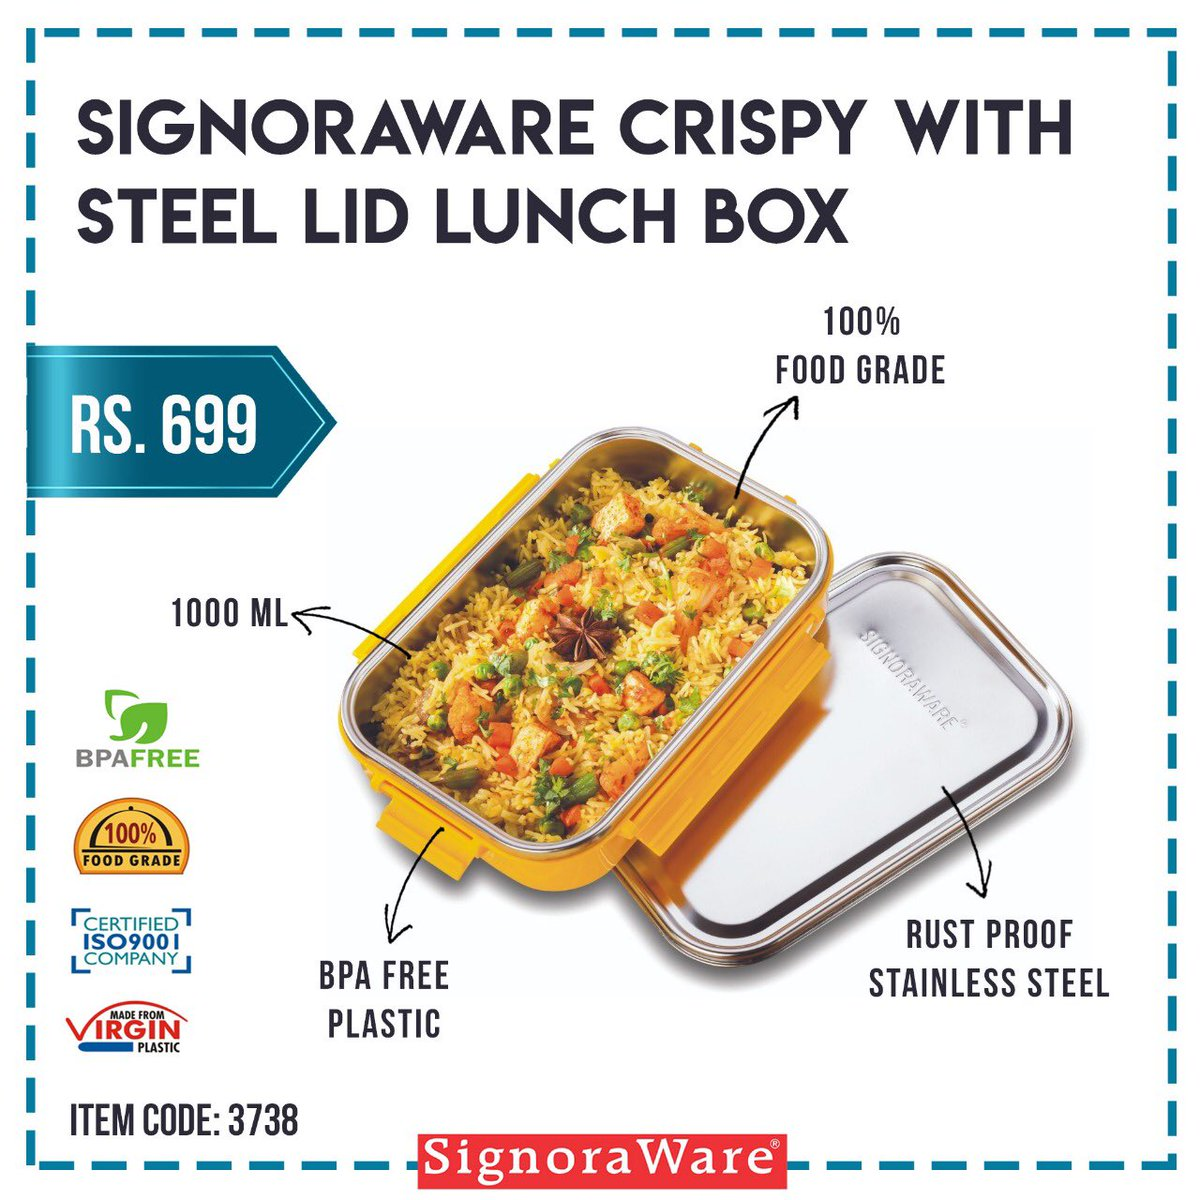 #NewProduct Be the first ones to grab the latest Signoraware products! Shop now at https://amzn.to/2LRIhvQ #new #newlaunch #newproduct #kitchen #kitchenproducts #designerkitchen #kitchendecor #usefulproducts #shop #shopnow #onlineshopping #onlineshop #budgetfriendly #designerpic.twitter.com/De2sXyuGnX